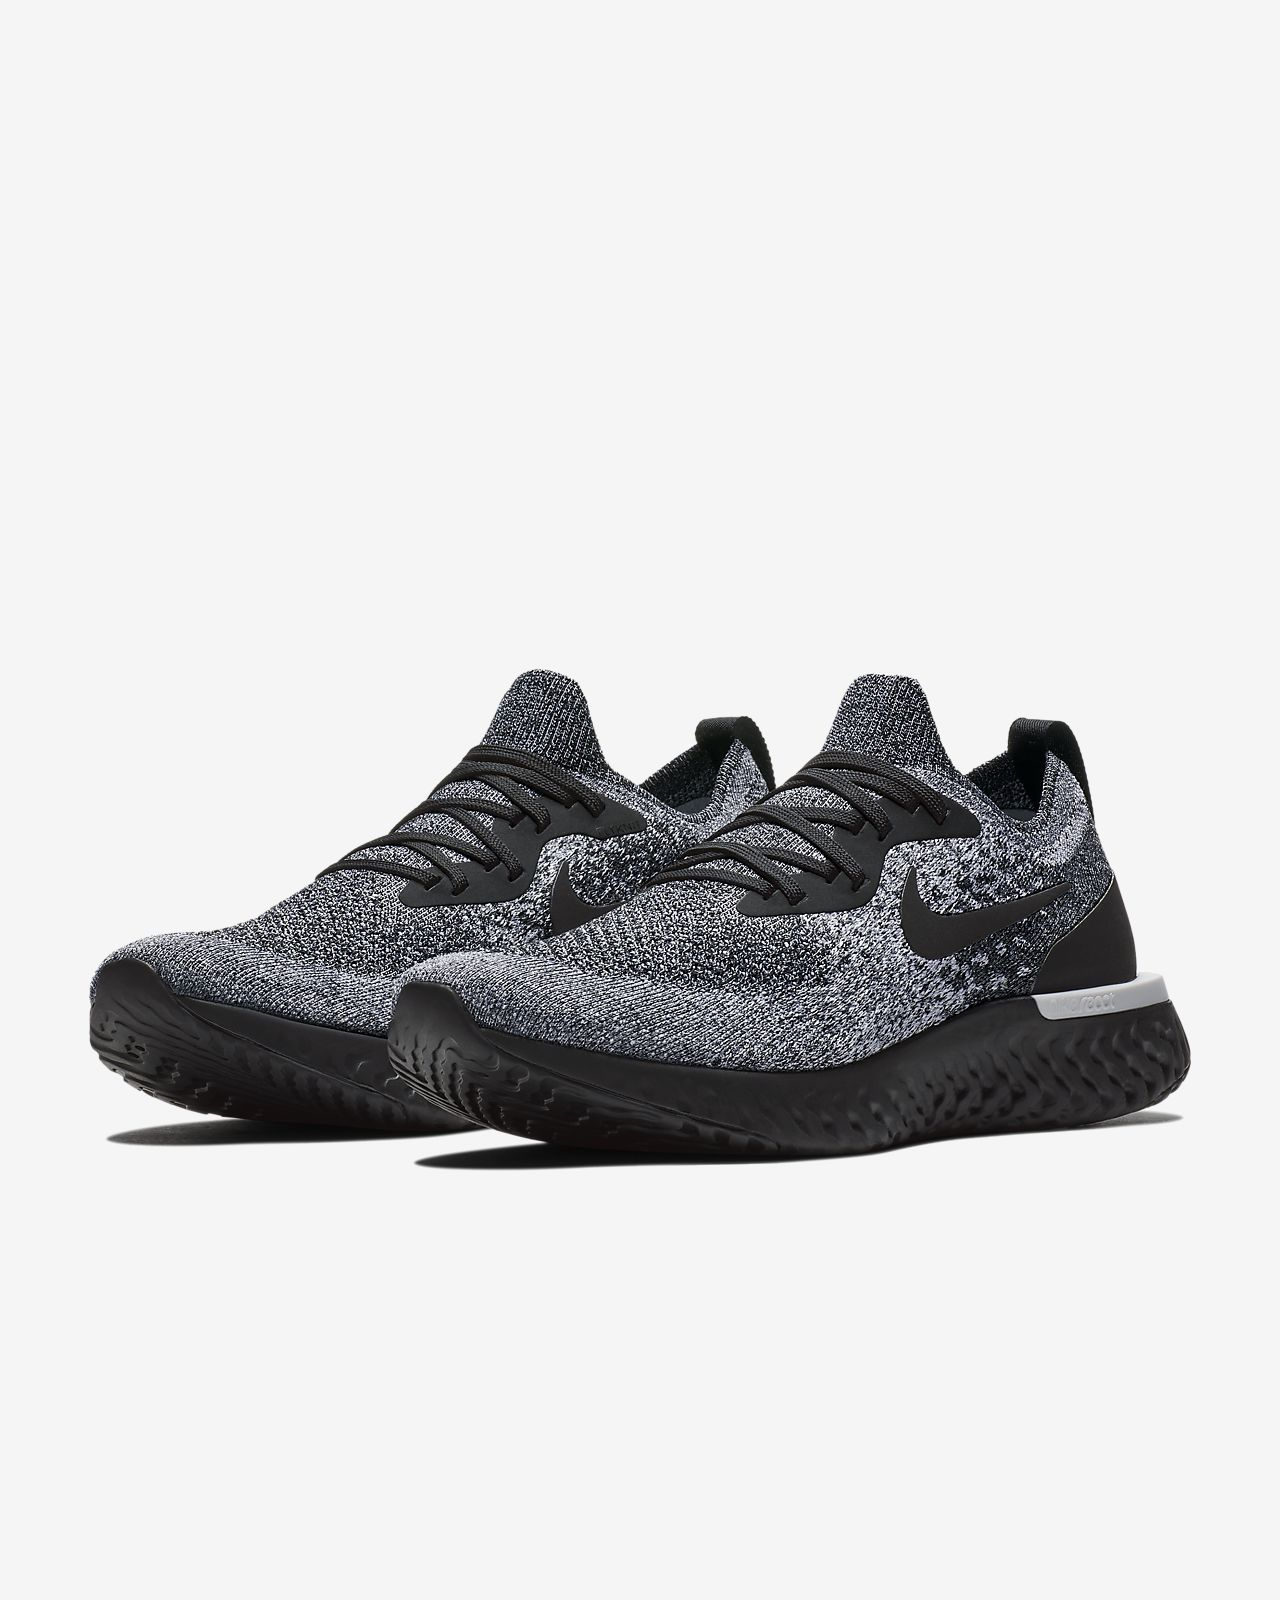 new product 00a41 283e8 Men s Running Shoe. Nike Epic React Flyknit